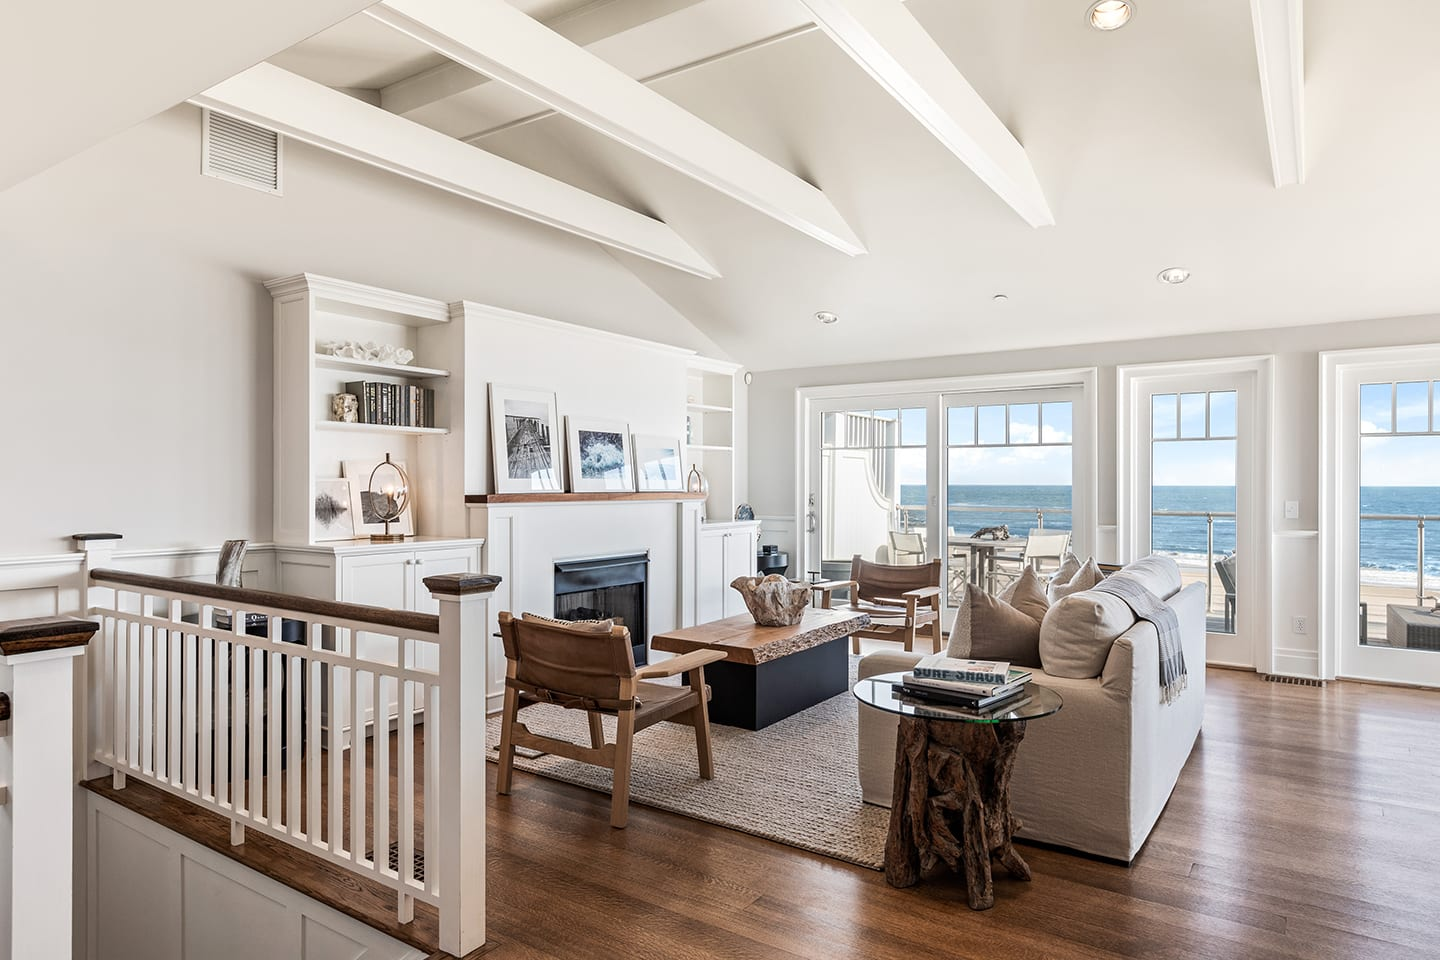 Salt Sea 9 Living Room with porch access and ocean views